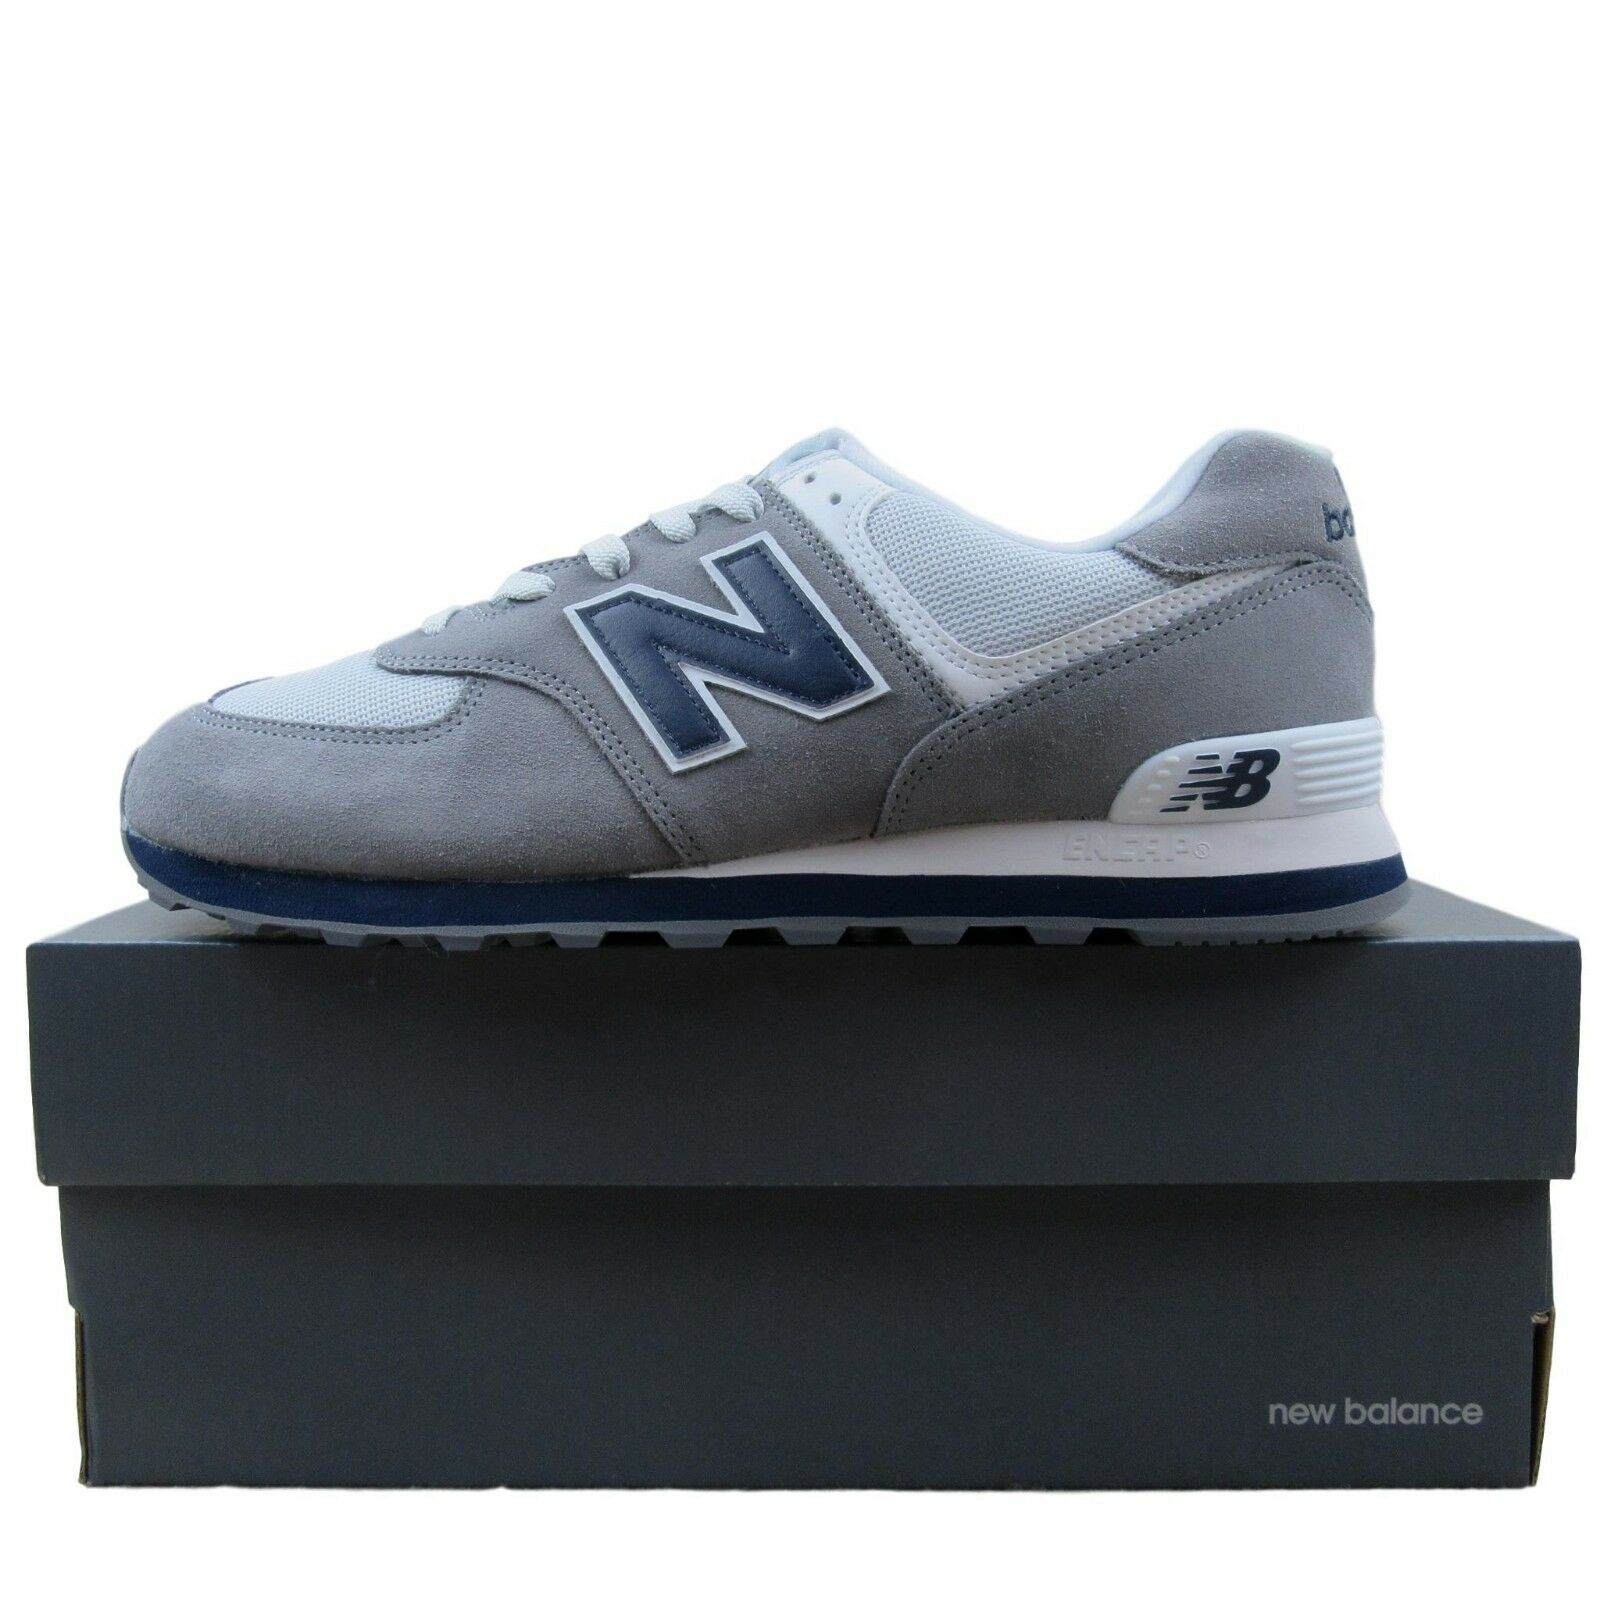 57ae43f22d8 New Balance 574 Core Plus Running Shoes Size 11 Mens Grey Navy ...